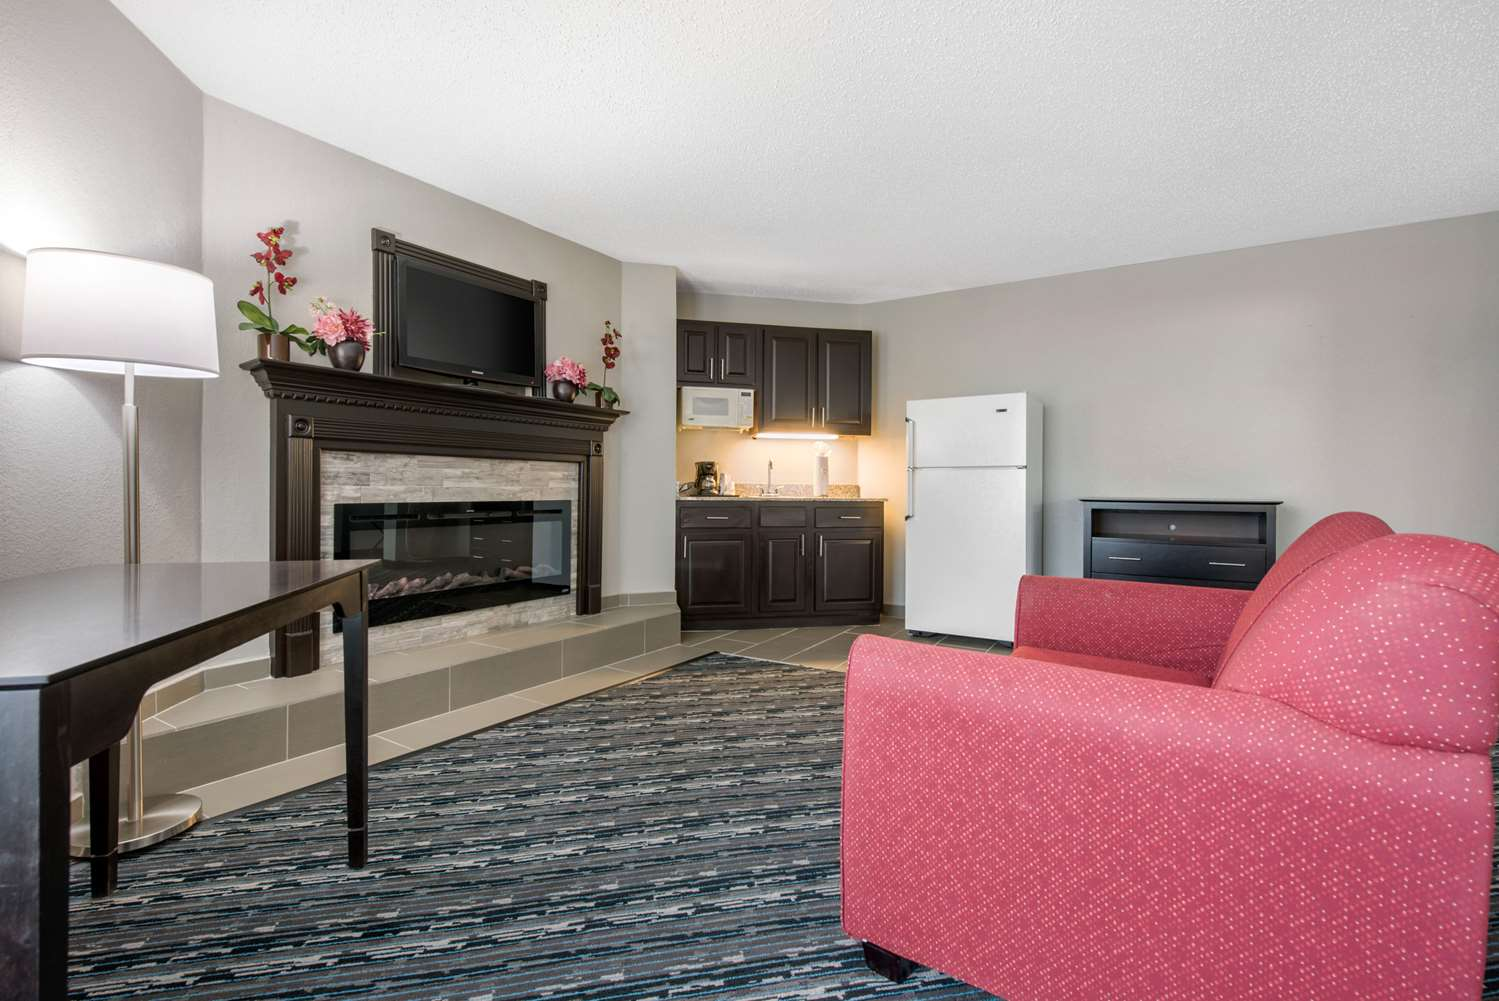 Quality Inn Amp Suites Brownsburg In See Discounts